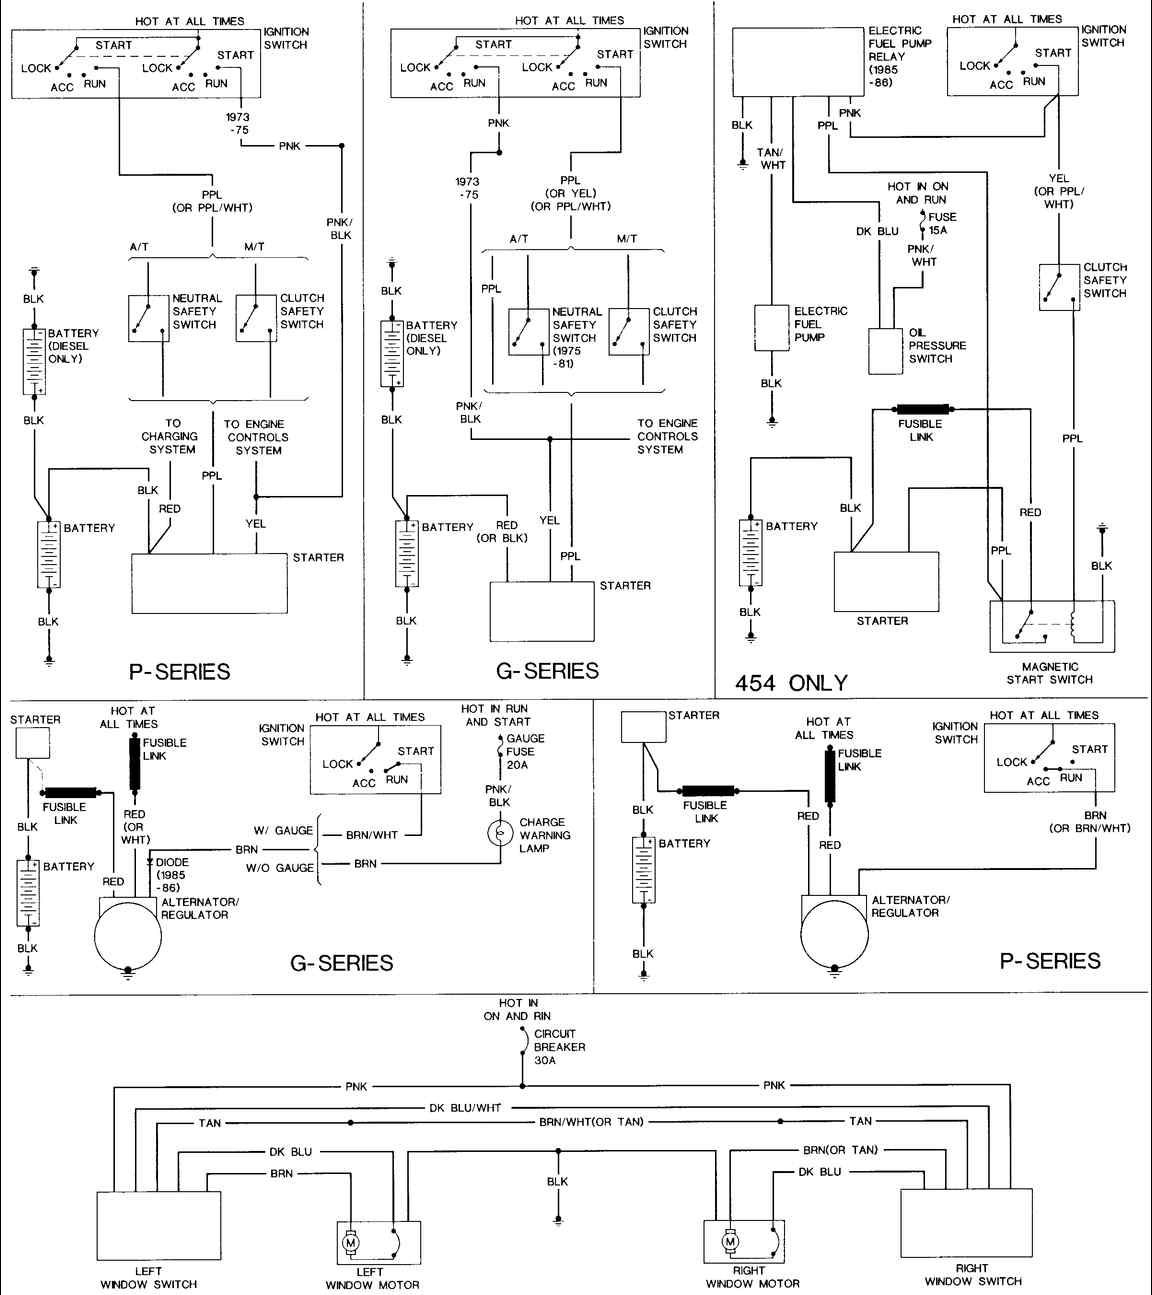 0c73623a181dc376dbb4777e2029d285 85 chevy truck wiring diagram 85 chevy van the steering column Chevy 305 Engine Exploded View at bayanpartner.co